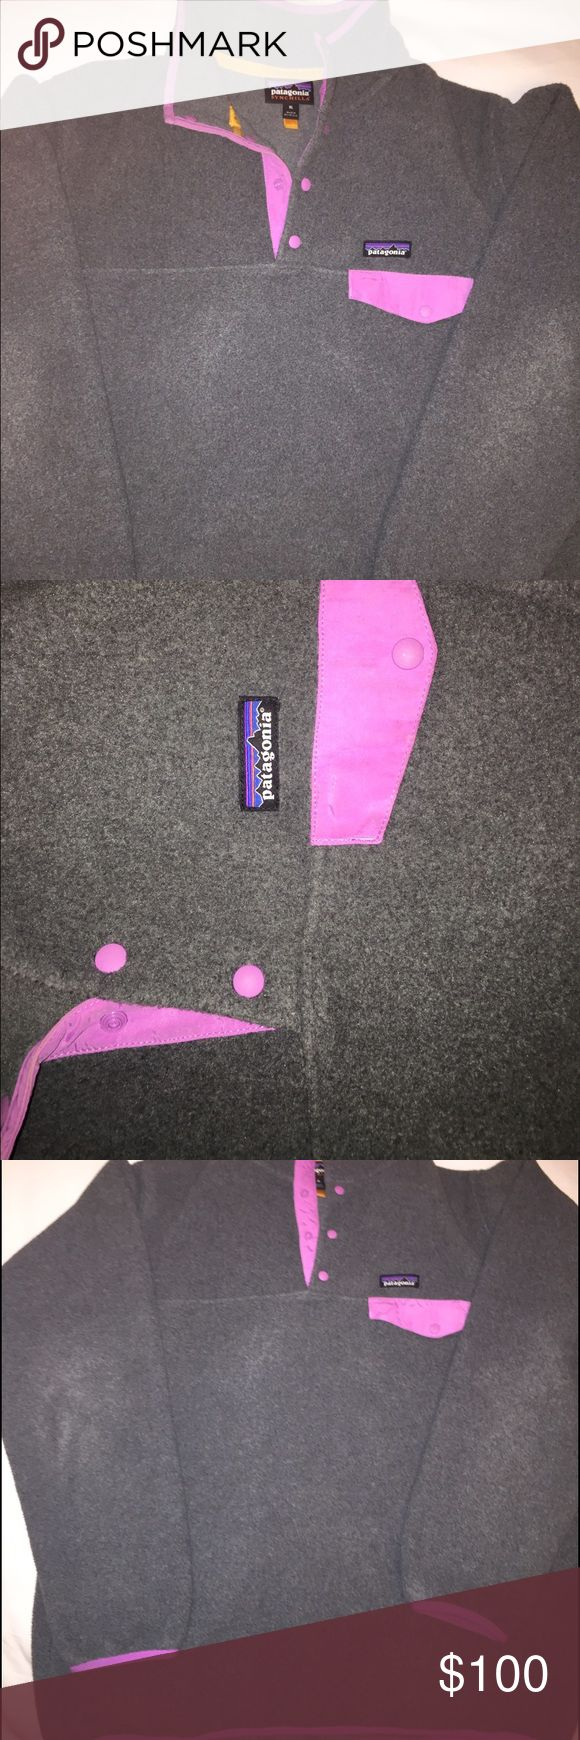 Grey Purple Pink Patagonia Fleece Jacket This Patagonia was purchased in North Carolina this year and has been worn only a few times since purchase. No wear, No tears, no stains or discoloration. I wear a Size M Shirt but purchased this jacket in XL so that it would fit loosely and be oversized. This is a unisex Jacket. I am willing to work with all reasonable offers! Trying to get it sold. Thanks for looking :) Patagonia Jackets & Coats